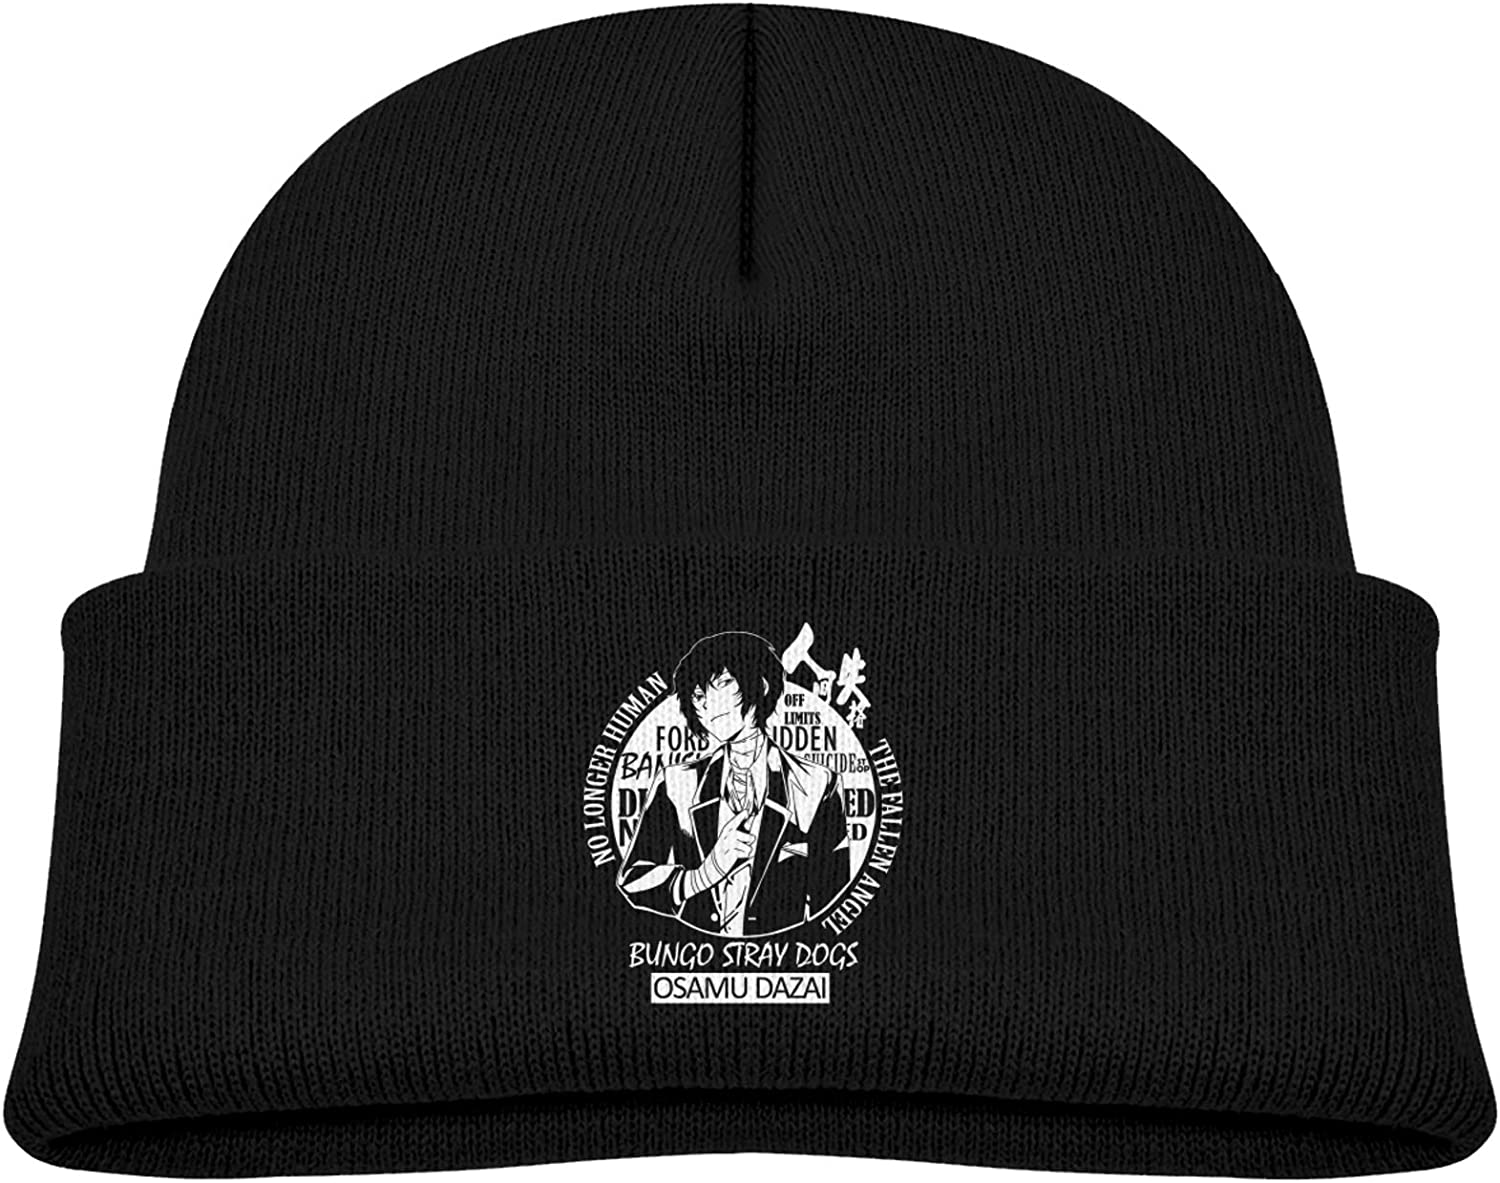 Yamike Dazai Kids Knitted Hat Thick Soft Warm Slouchy Knit Hat for Toddlers Boys /& Girl Winter Soft Ski Cap Black